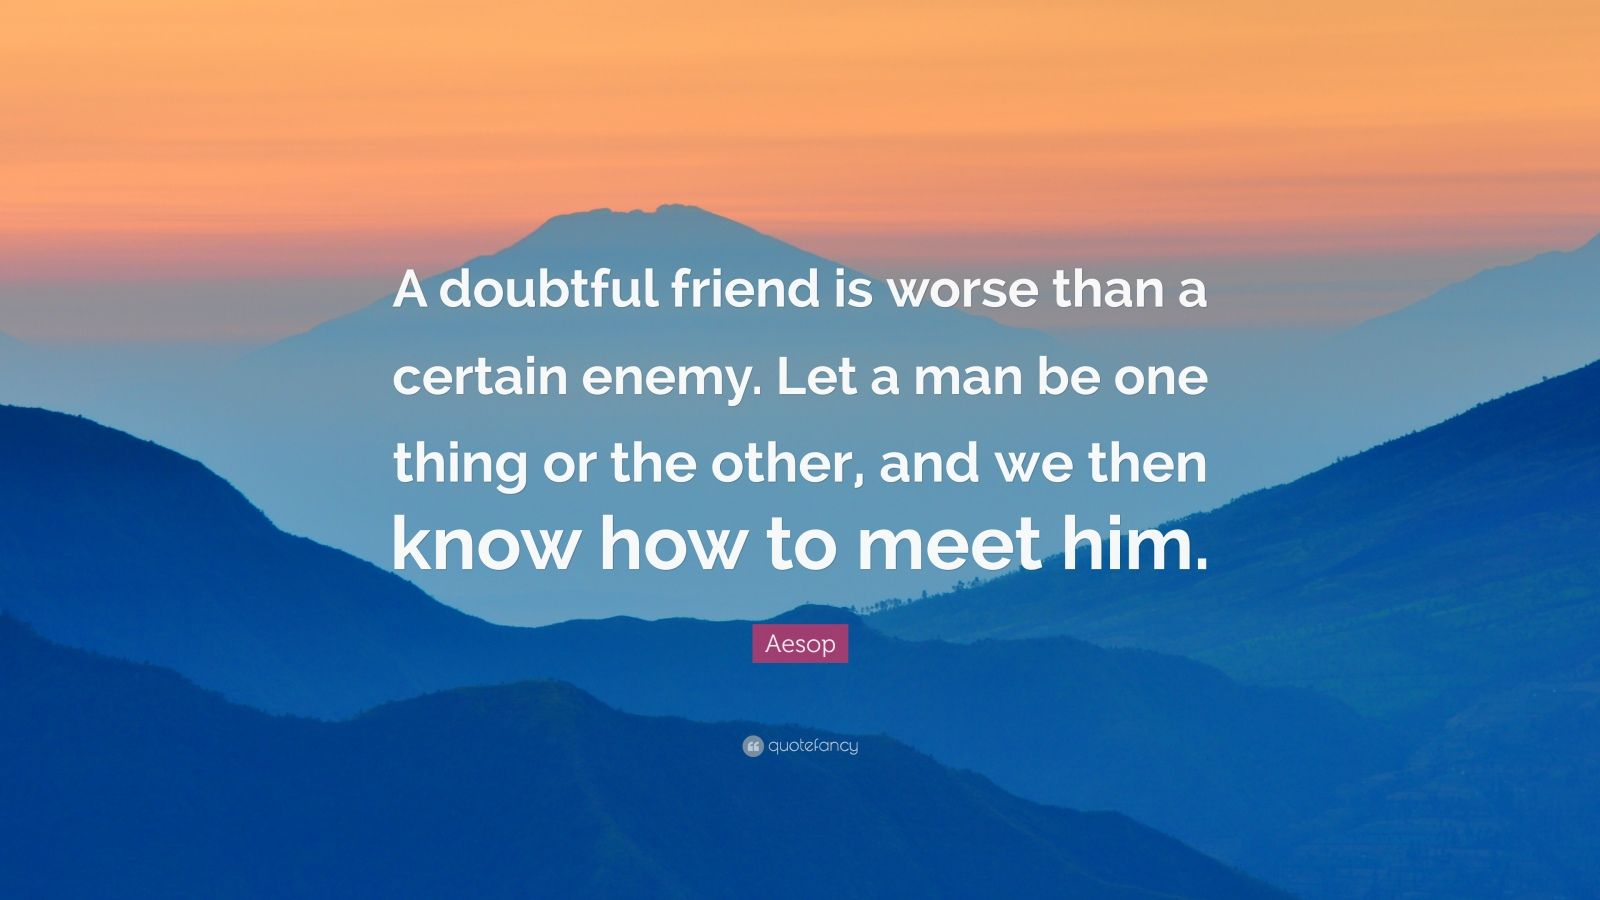 """Aesop Quote: """"A doubtful friend is worse than a certain enemy. Let a man be one thing or the other, and we then know how to meet him."""""""